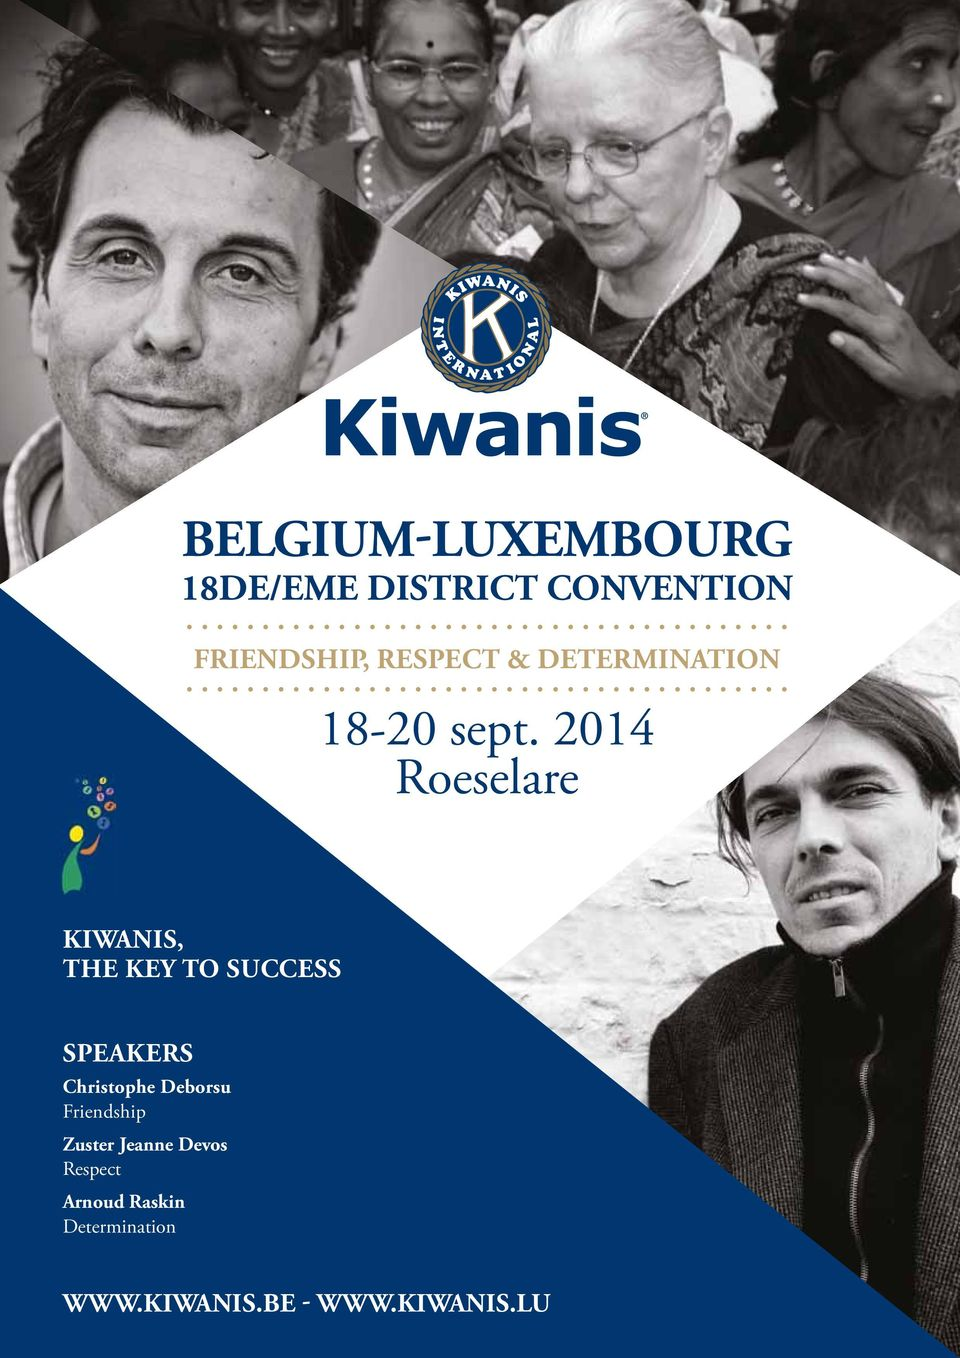 2014 Roeselare KIWANIS, THE KEY TO SUCCESS SPEAKERS Christophe